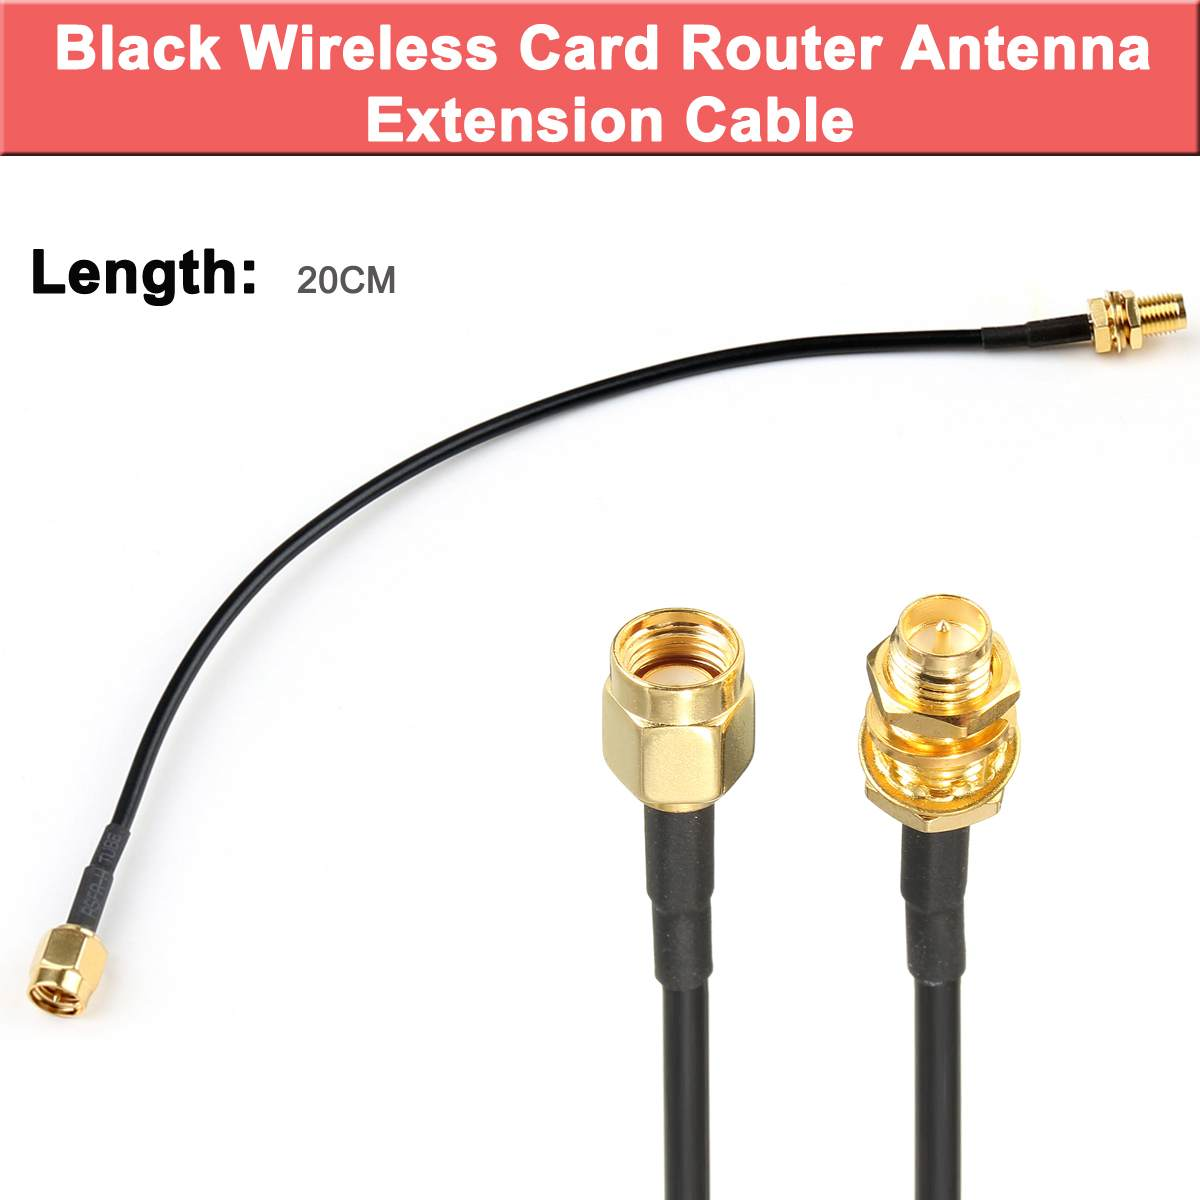 10M SMA Extension Cable Cord Line Antenna Connector For WiFi Wireless Router